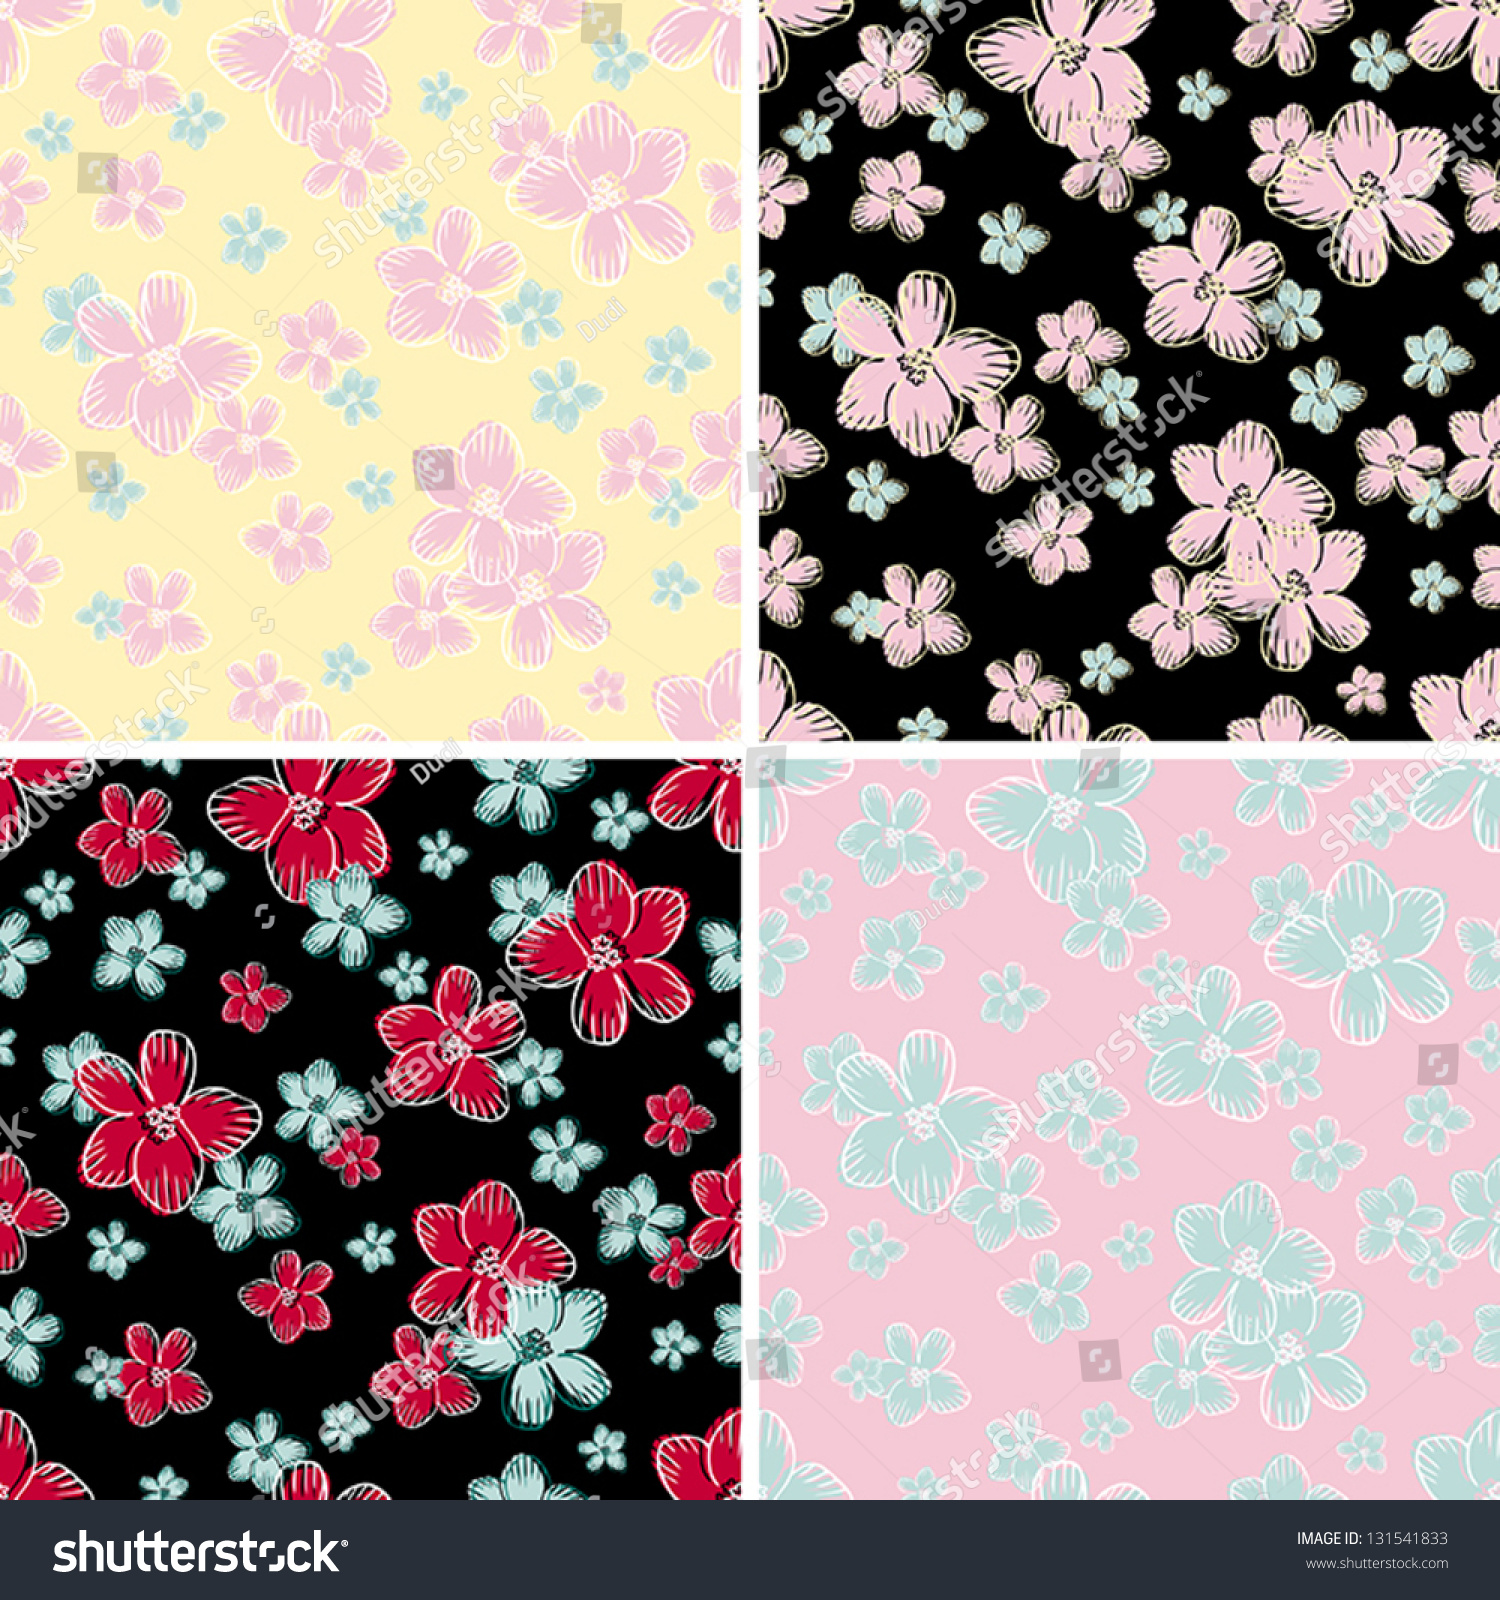 Vintage Floral Backgrounds Set Retro Seamless Stock Vector